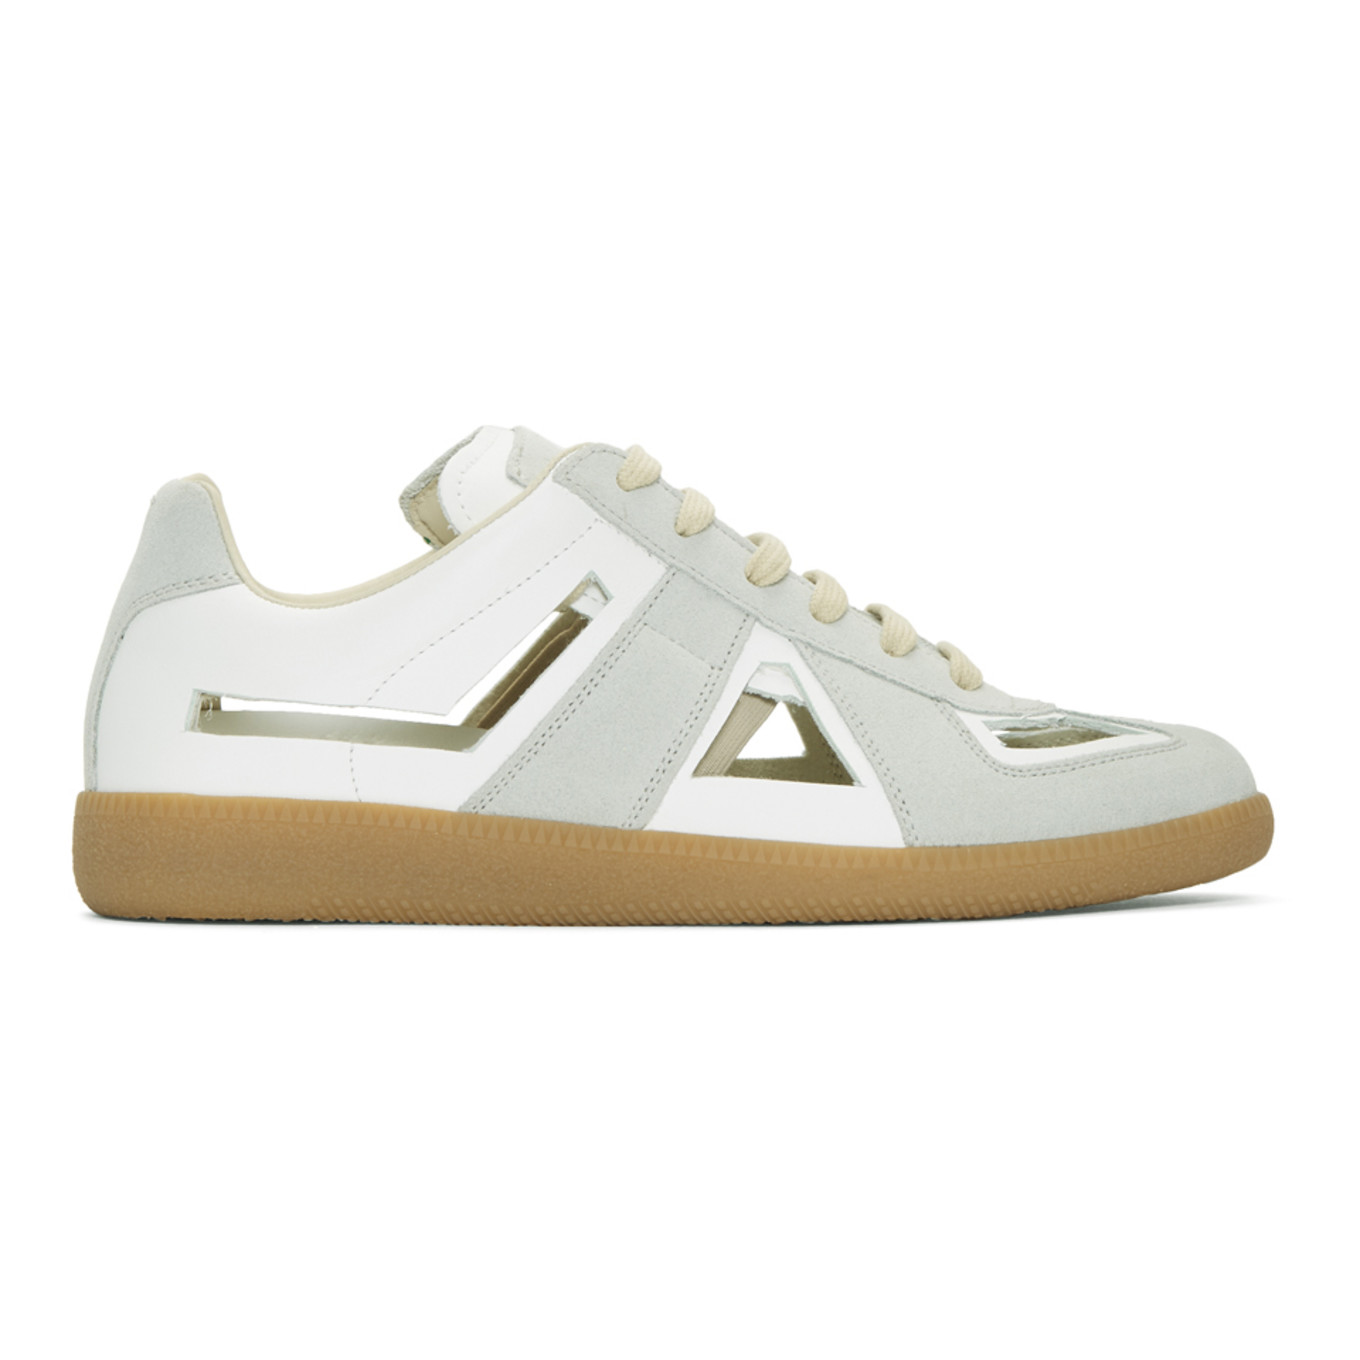 White & Grey Decortique Cut Out Replica Sneakers by Maison Margiela